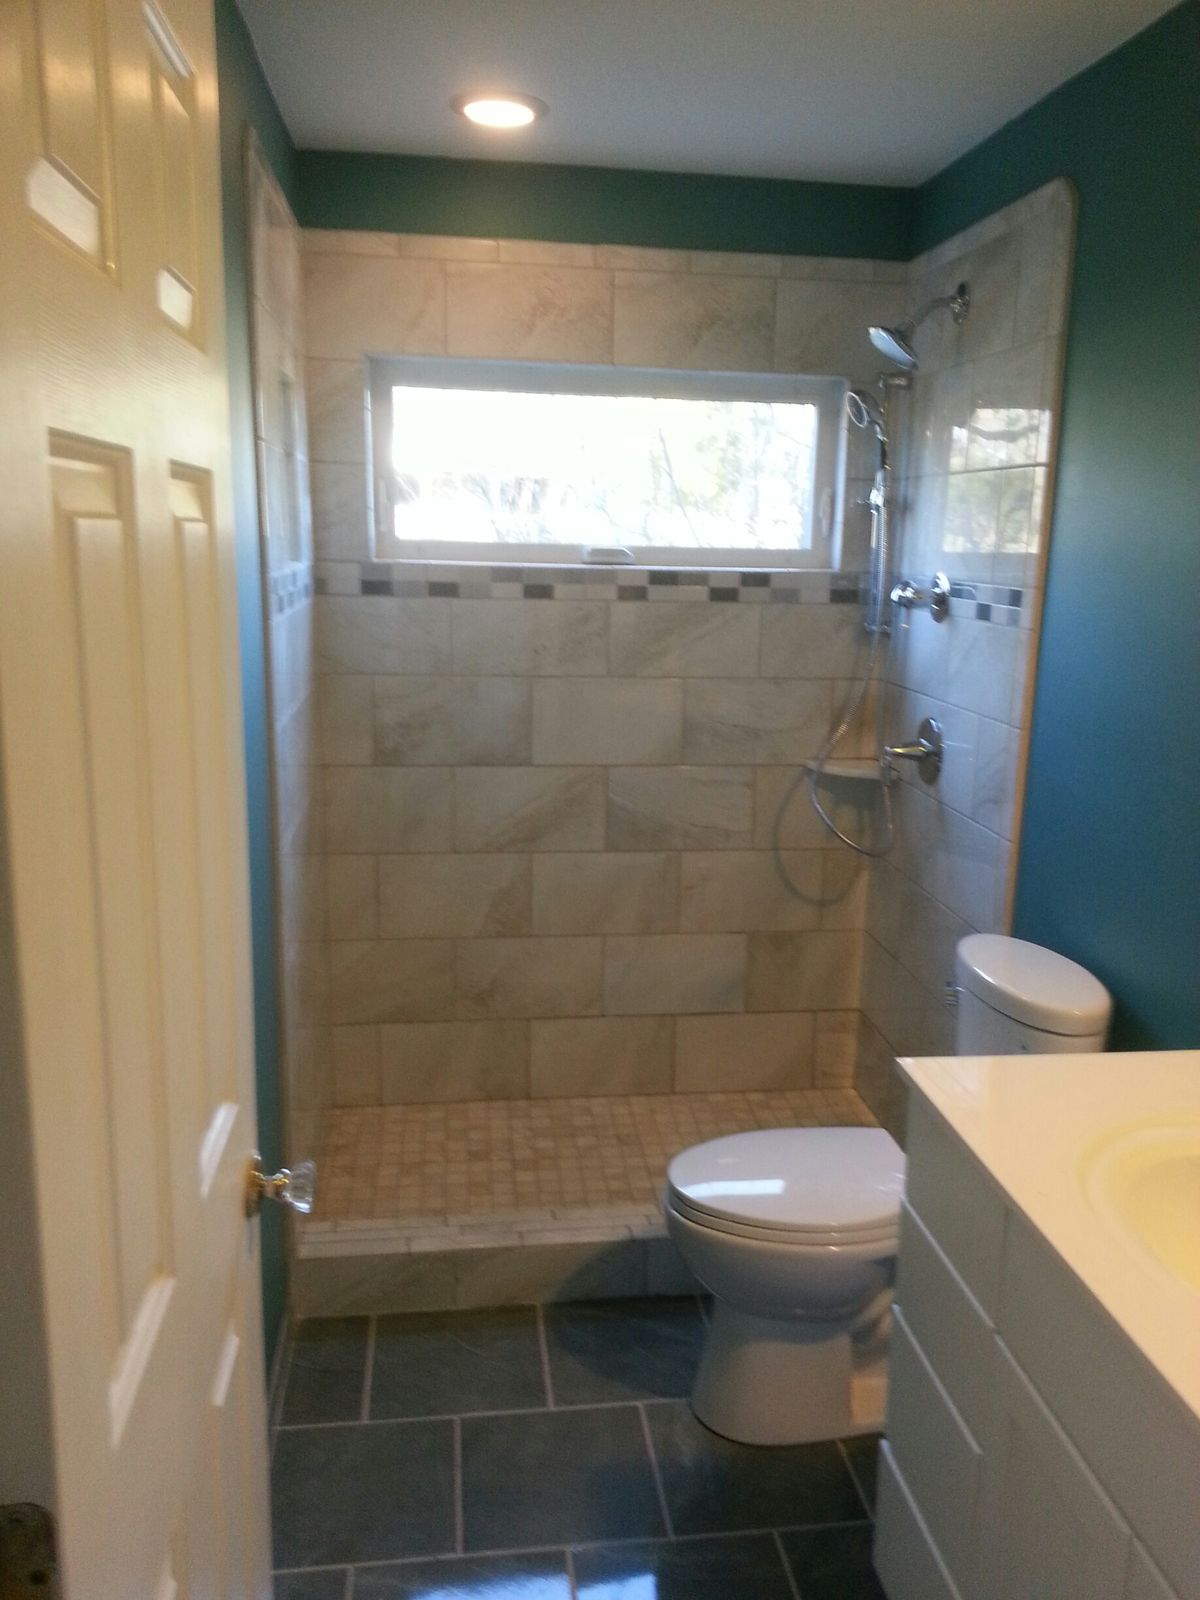 Home remodeling greensboro nc gallery for Bath remodel greensboro nc